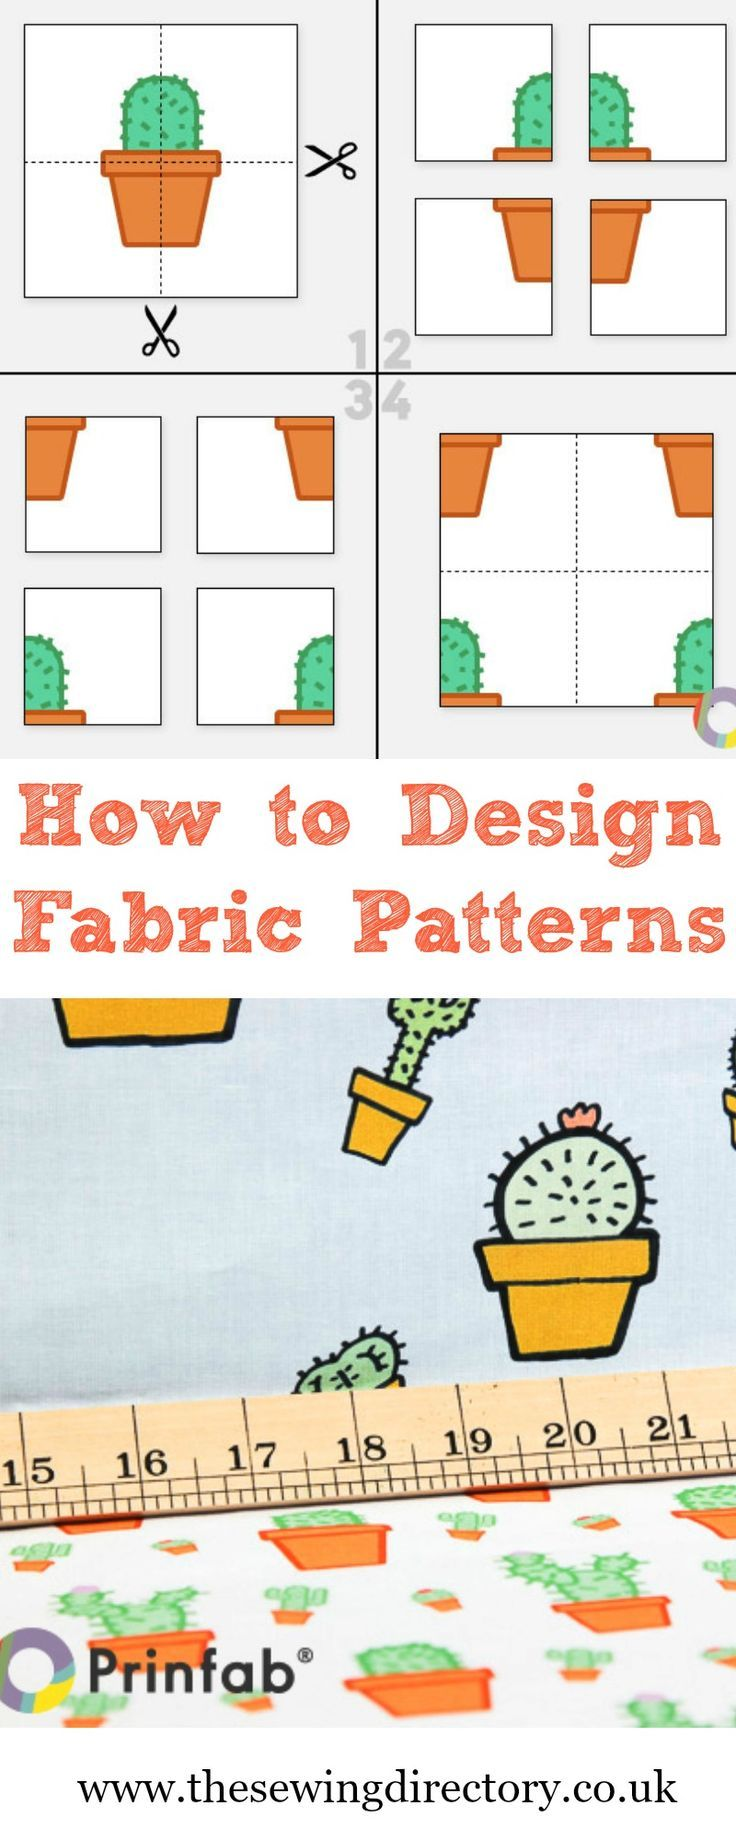 Tips on designing for fabric printing from Prinfab.